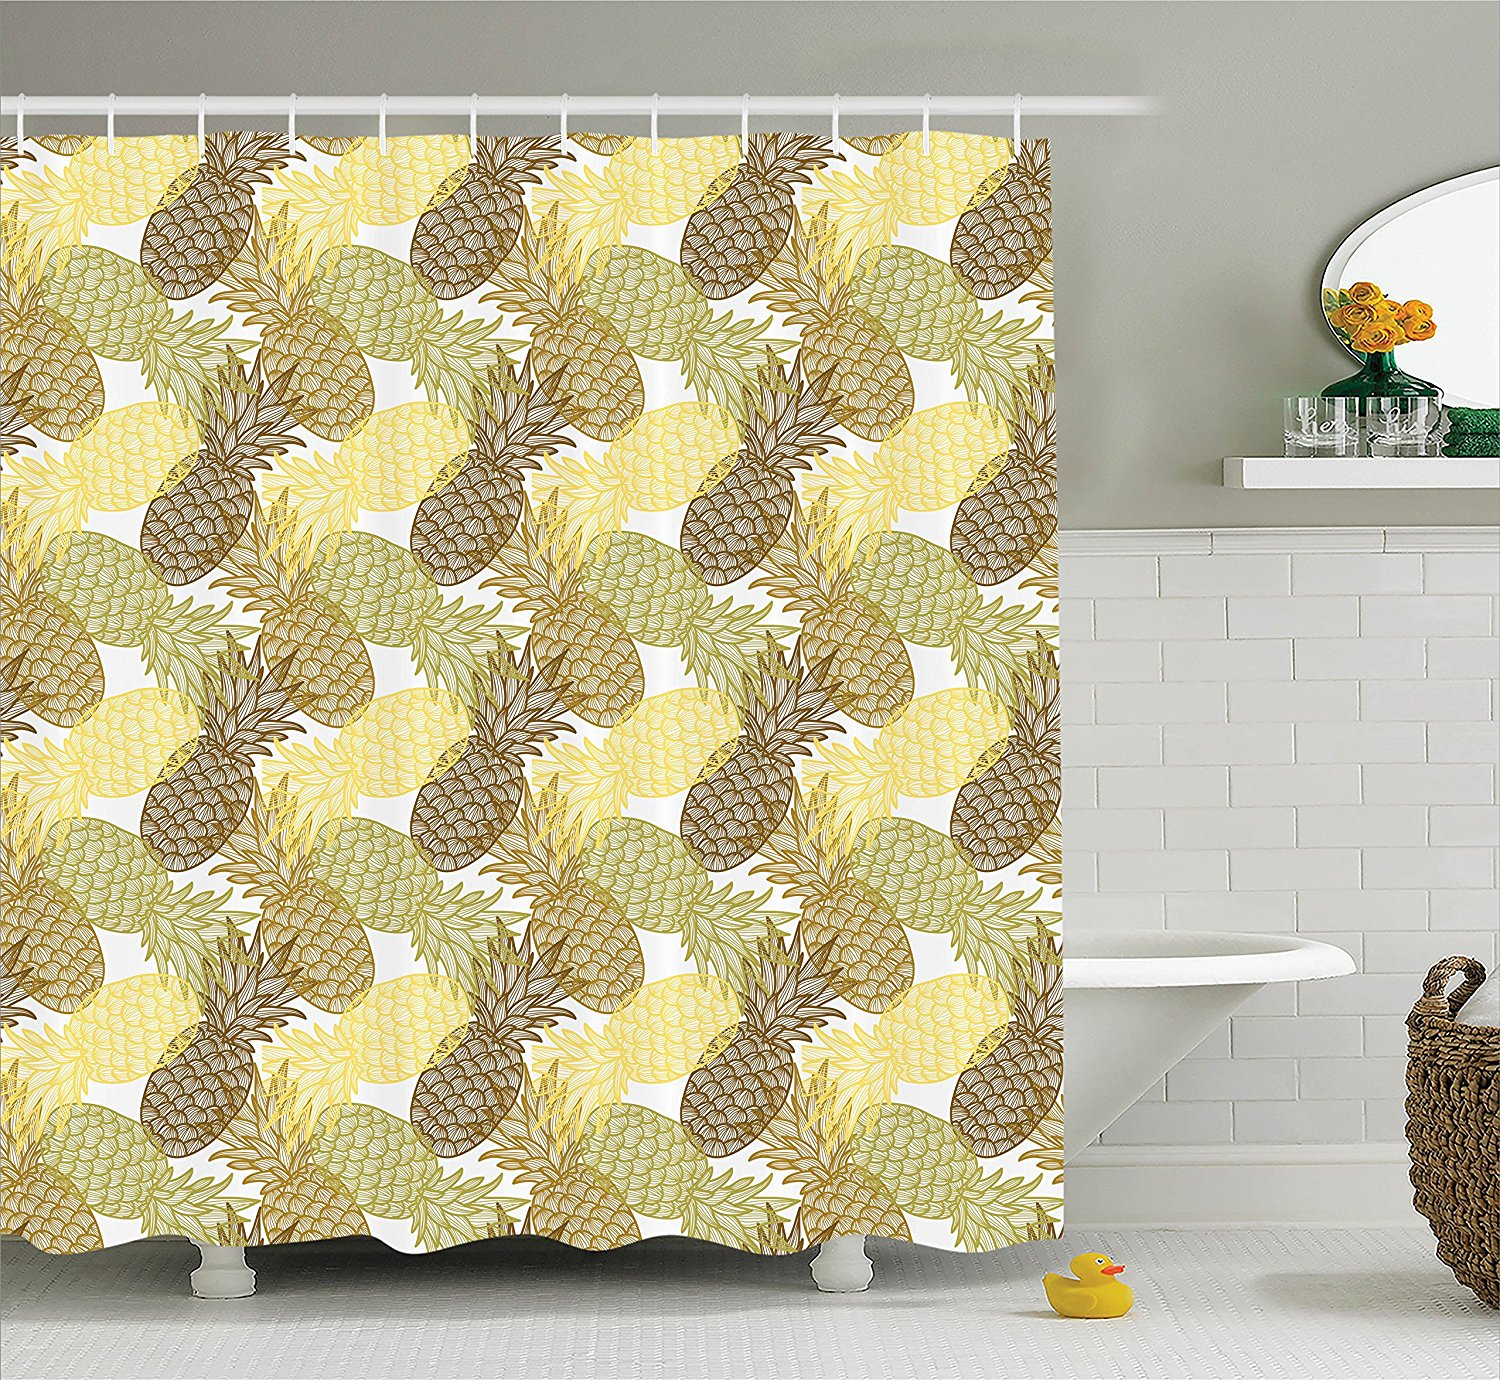 Pineapple Decor Shower Curtain Set By , Summer Themed